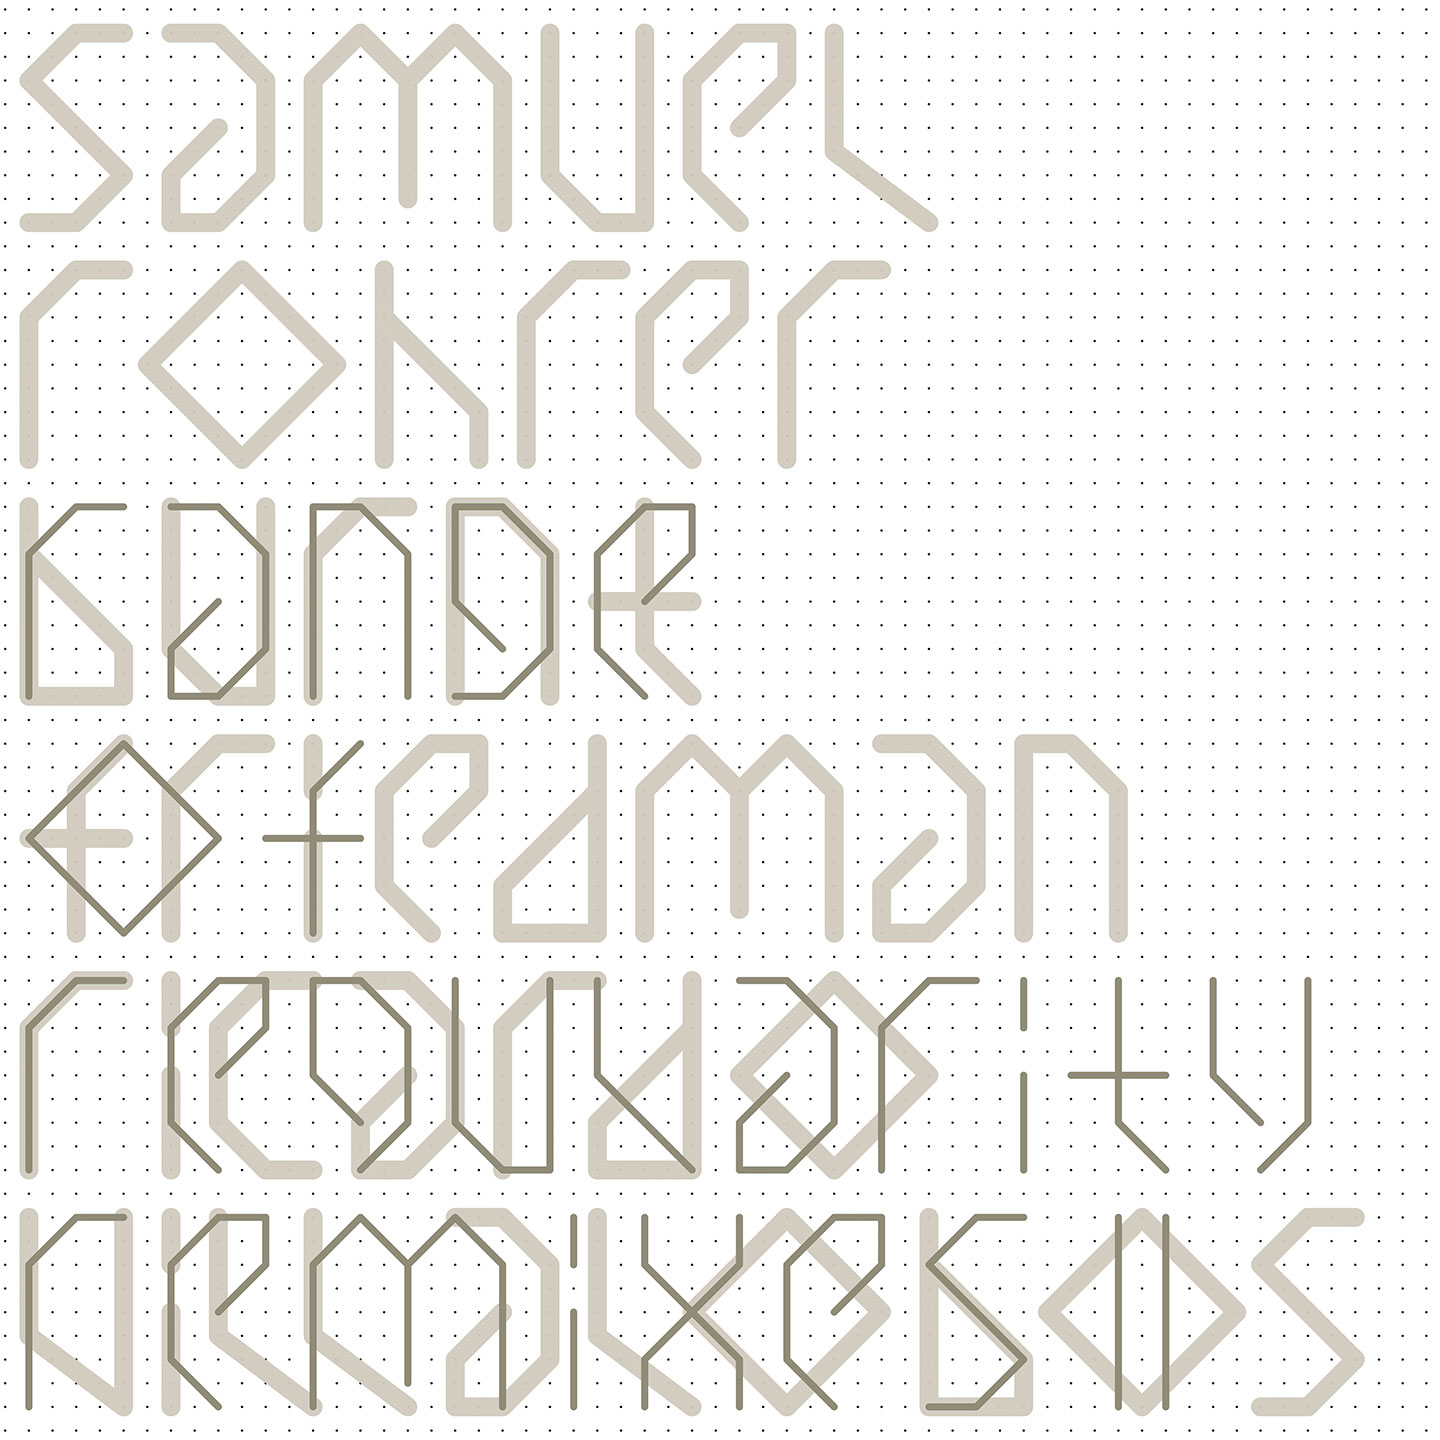 Samuel Rohrer - Range Of Regularity Remixes Volume 2